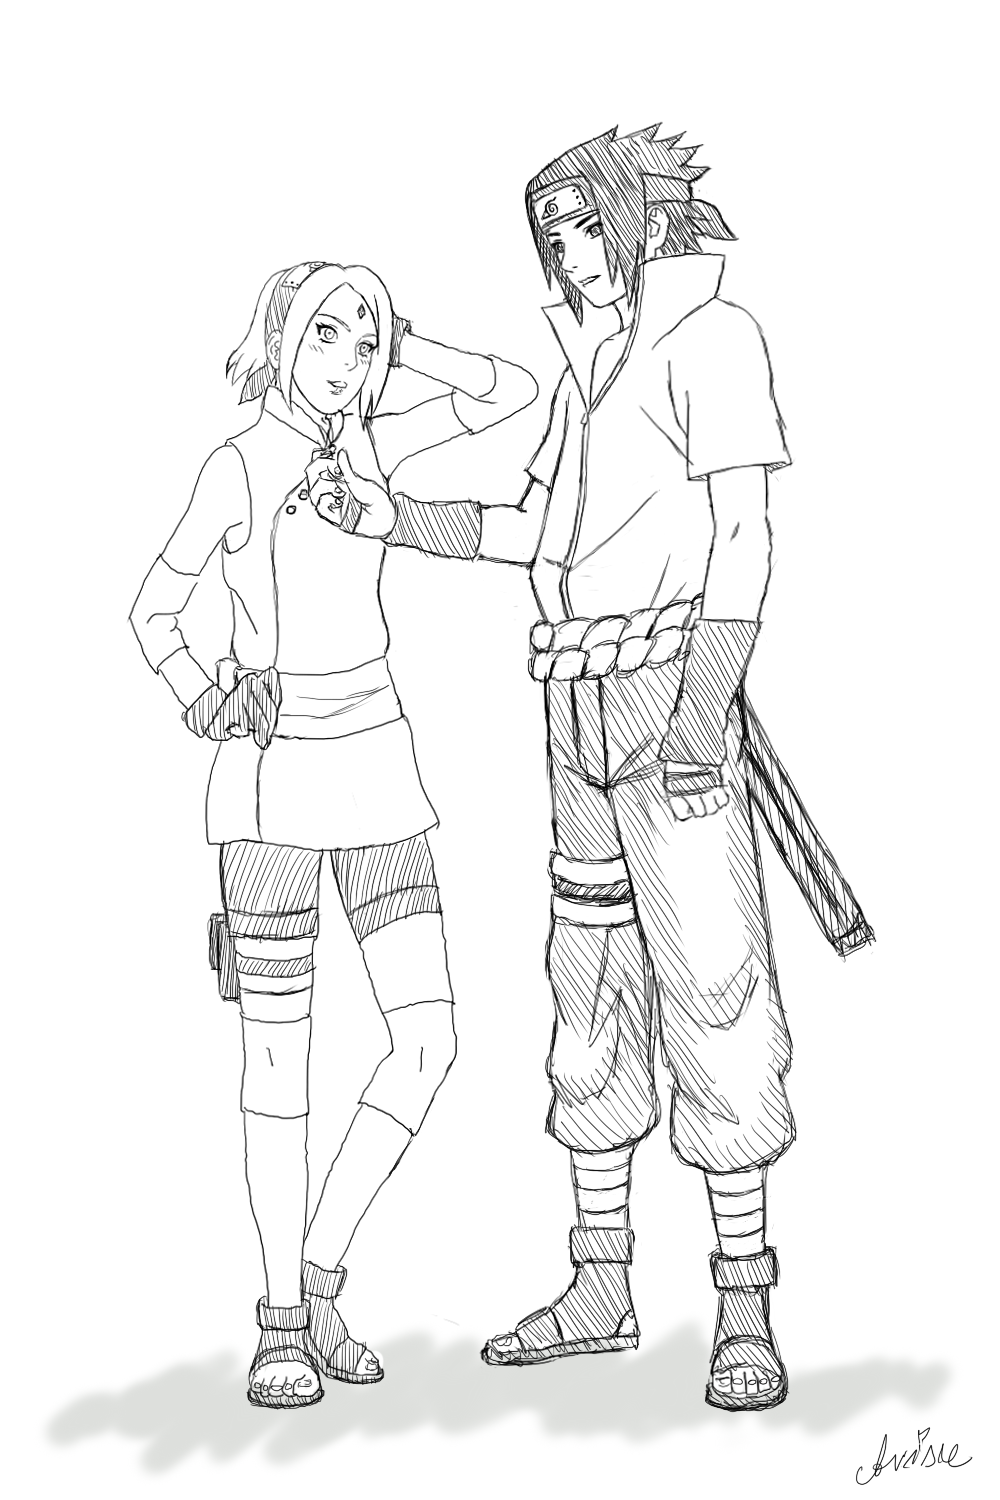 The Last movie - SasuSaku sketch by ArisuAmyFan on DeviantArt